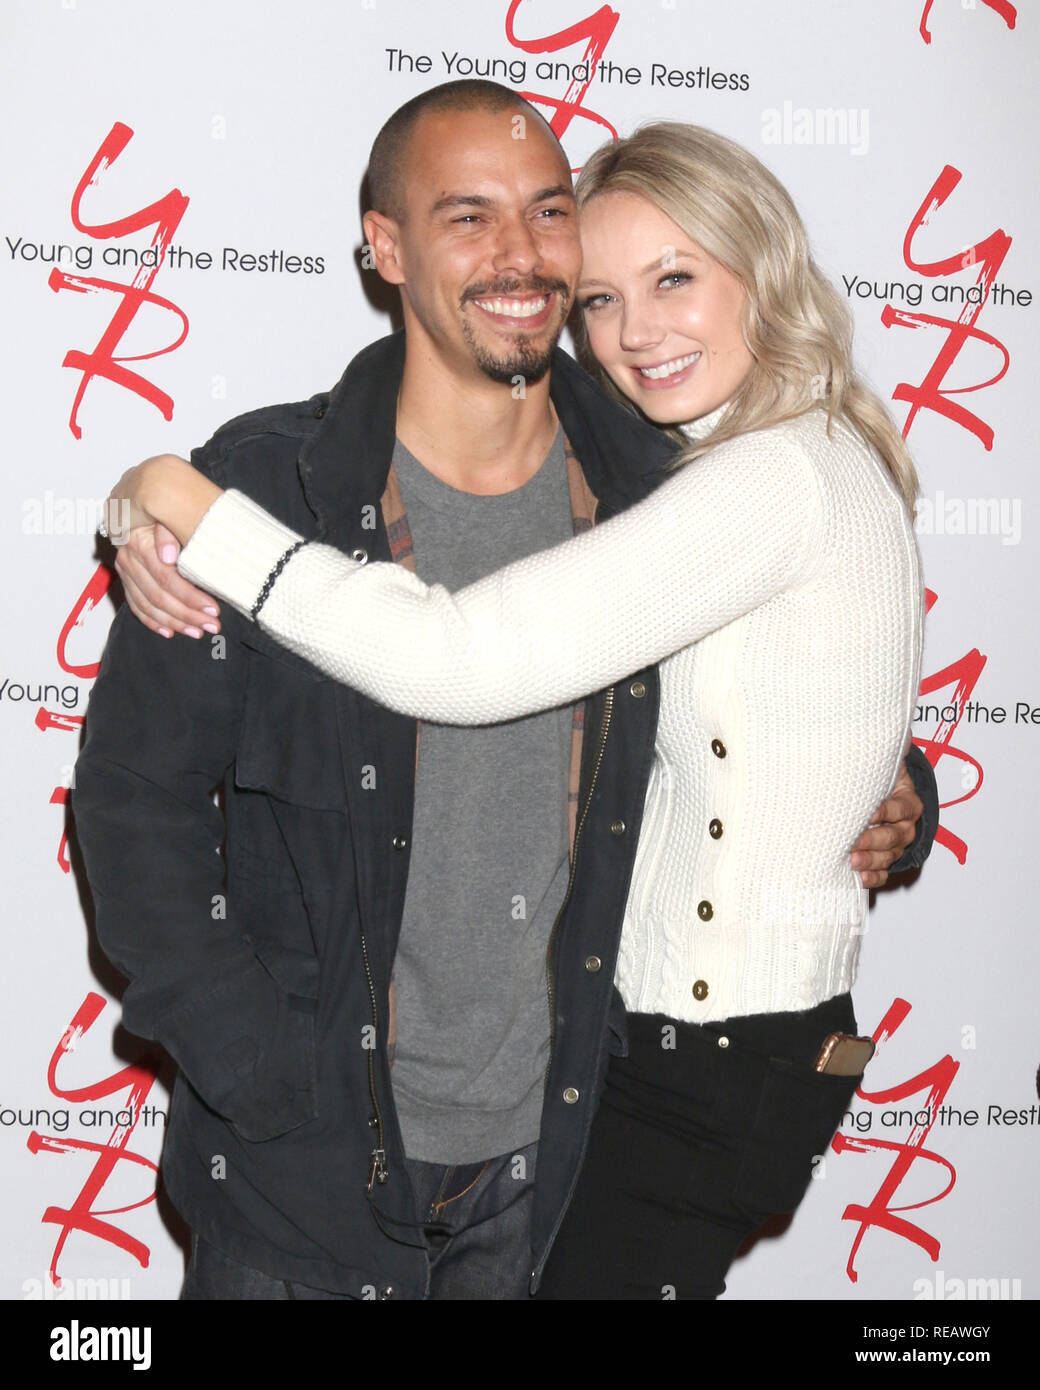 January 17, 2019 - Los Angeles, CA, USA - LOS ANGELES - JAN 17:  Bryton James, Melissa Ordway at the Young and the Restless Celebrates 30 Years at #1 at the CBS Television CIty on January 17, 2019 in Los Angeles, CA (Credit Image: © Kay Blake/ZUMA Wire) - Stock Image